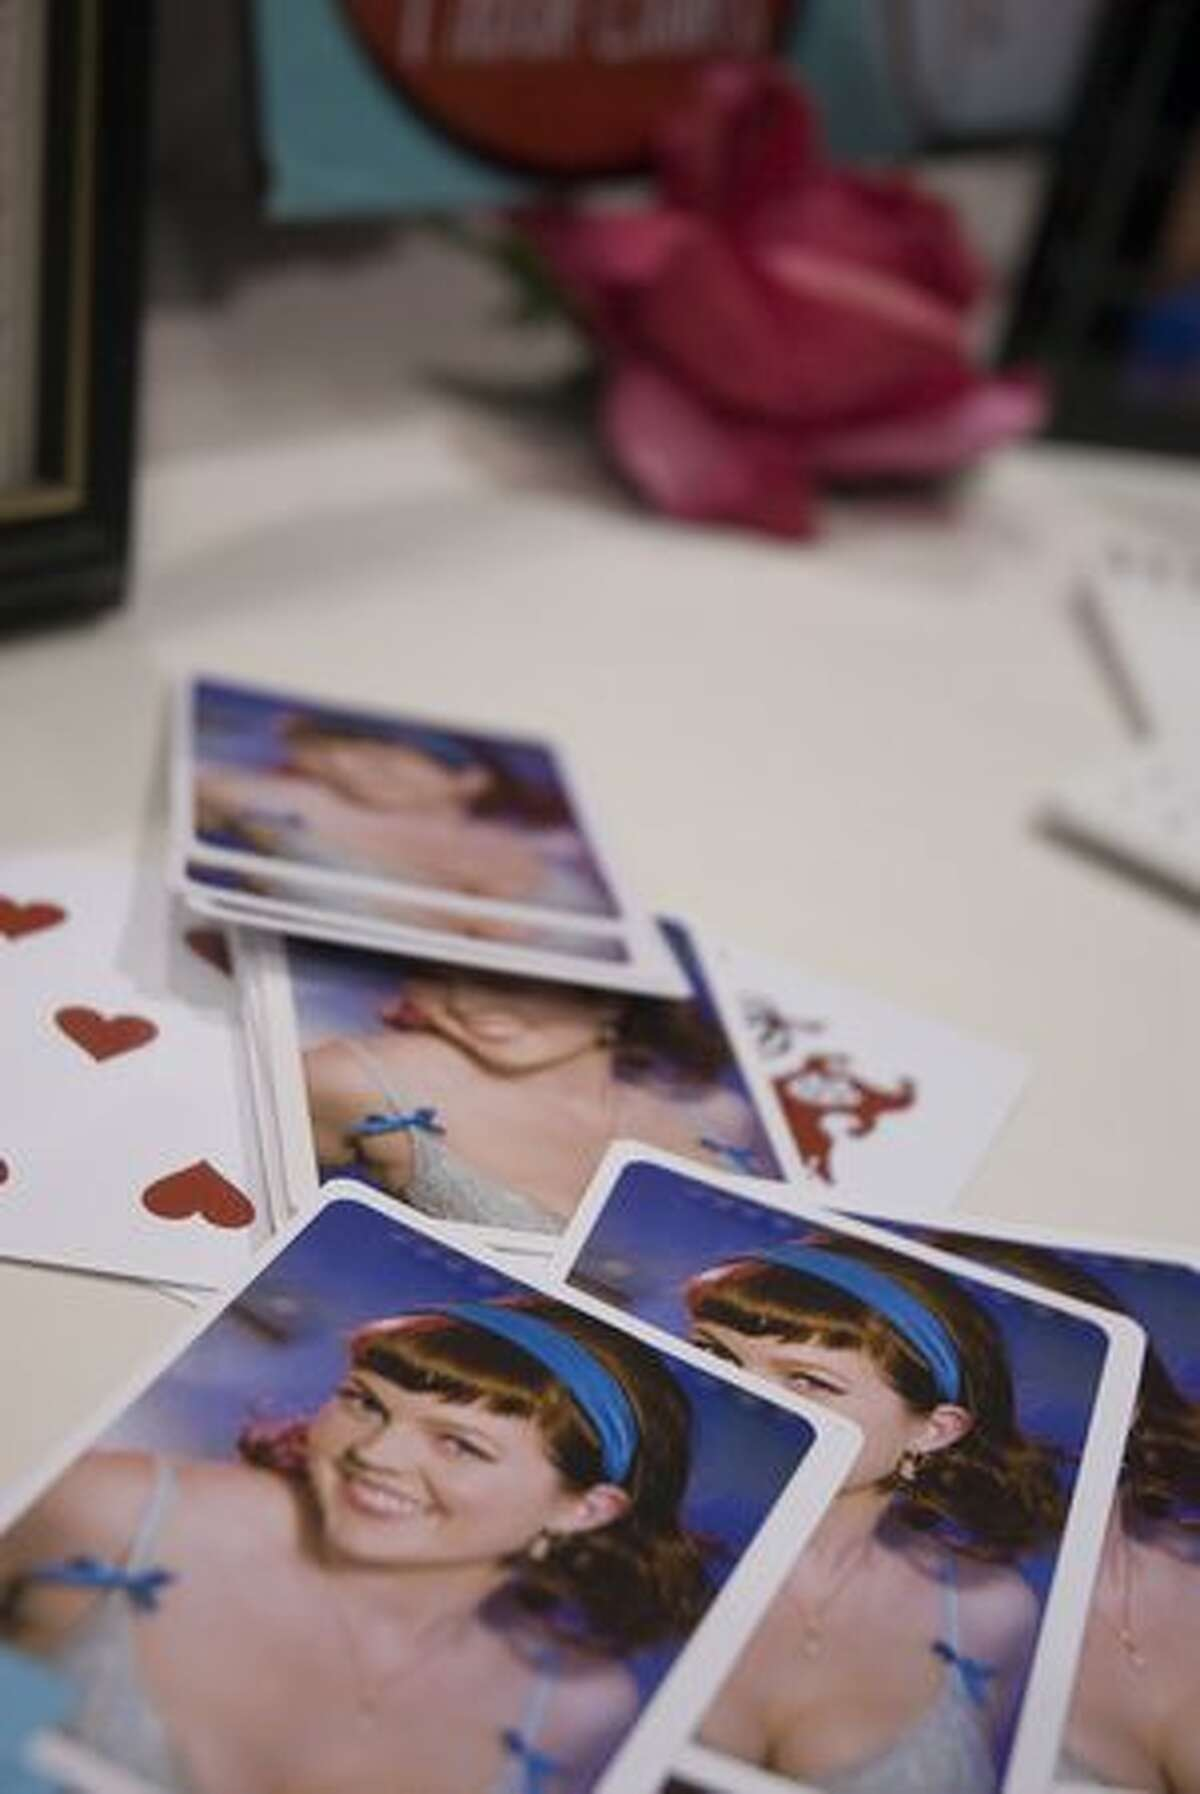 One thing brides can do with the sexy pictures they get from Old School Pin Ups: print playing cards. The 20th annual Seattle Wedding Show took place at the Washington State Convention and Trade Center Jan. 16-17. Read about the 5 coolest booths at the show here. (Rebecca Livingston/seattlepi.com)